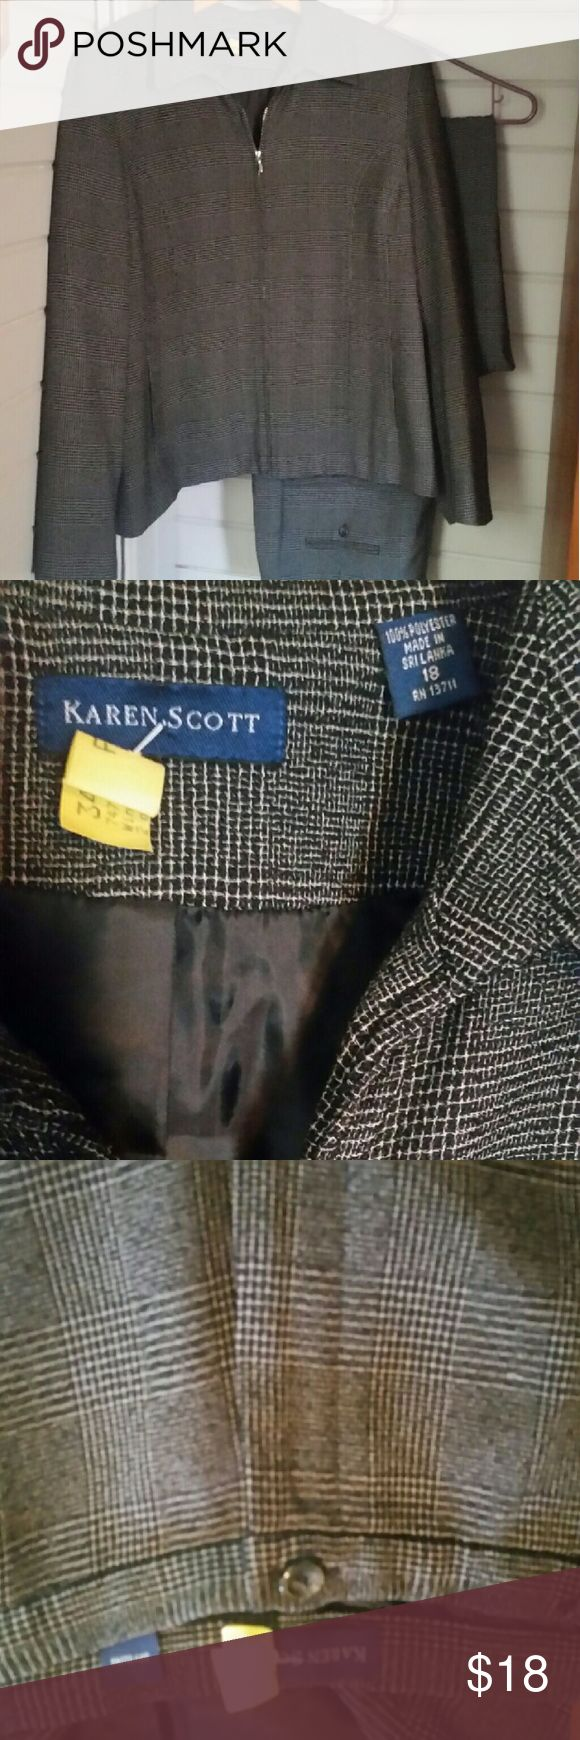 Grey and black plaid pant suit Sz 18 Zipper jacket and matching pants.  Great used condition but the zipper is slightly sticky. Sz 18 but i would say this runs slightly large. Karen Scott Jackets & Coats Blazers